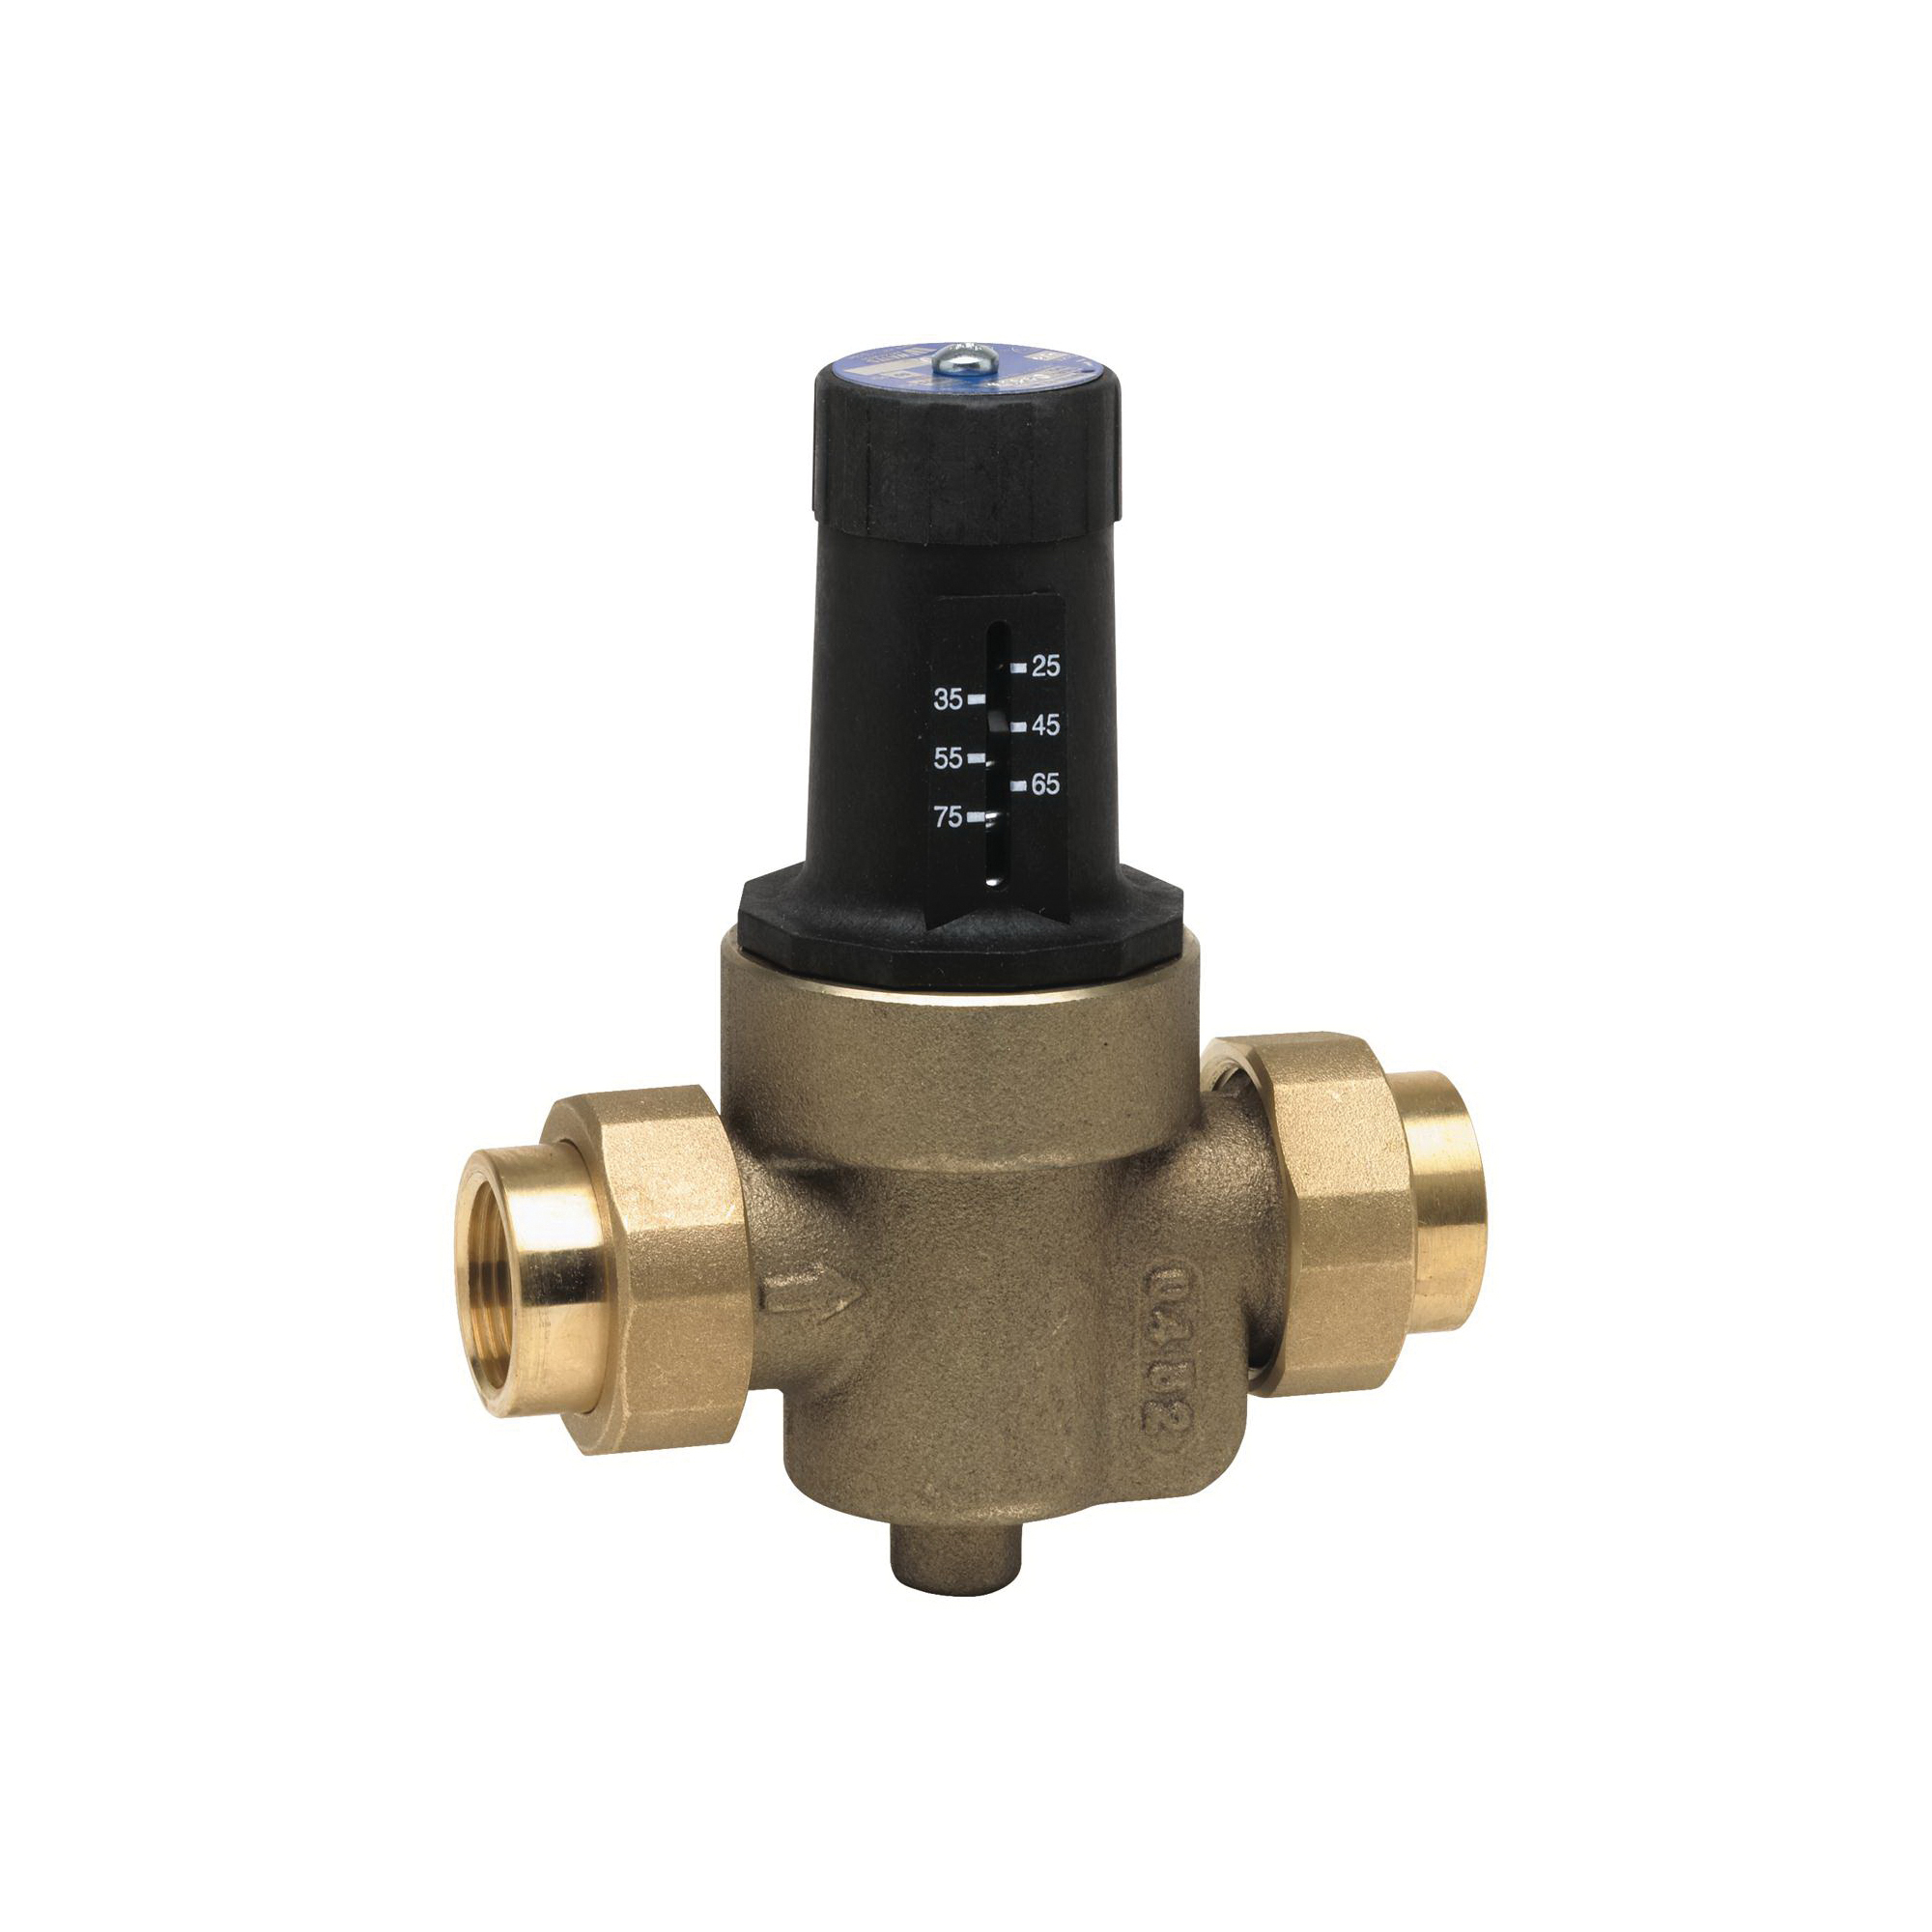 WATTS® 0009482 LFN45B-M1 Standard Capacity Pressure Reducing Valve, 3/4 in, Double Union FNPT, 400 psi Working, Cast Copper Silicon Alloy Body